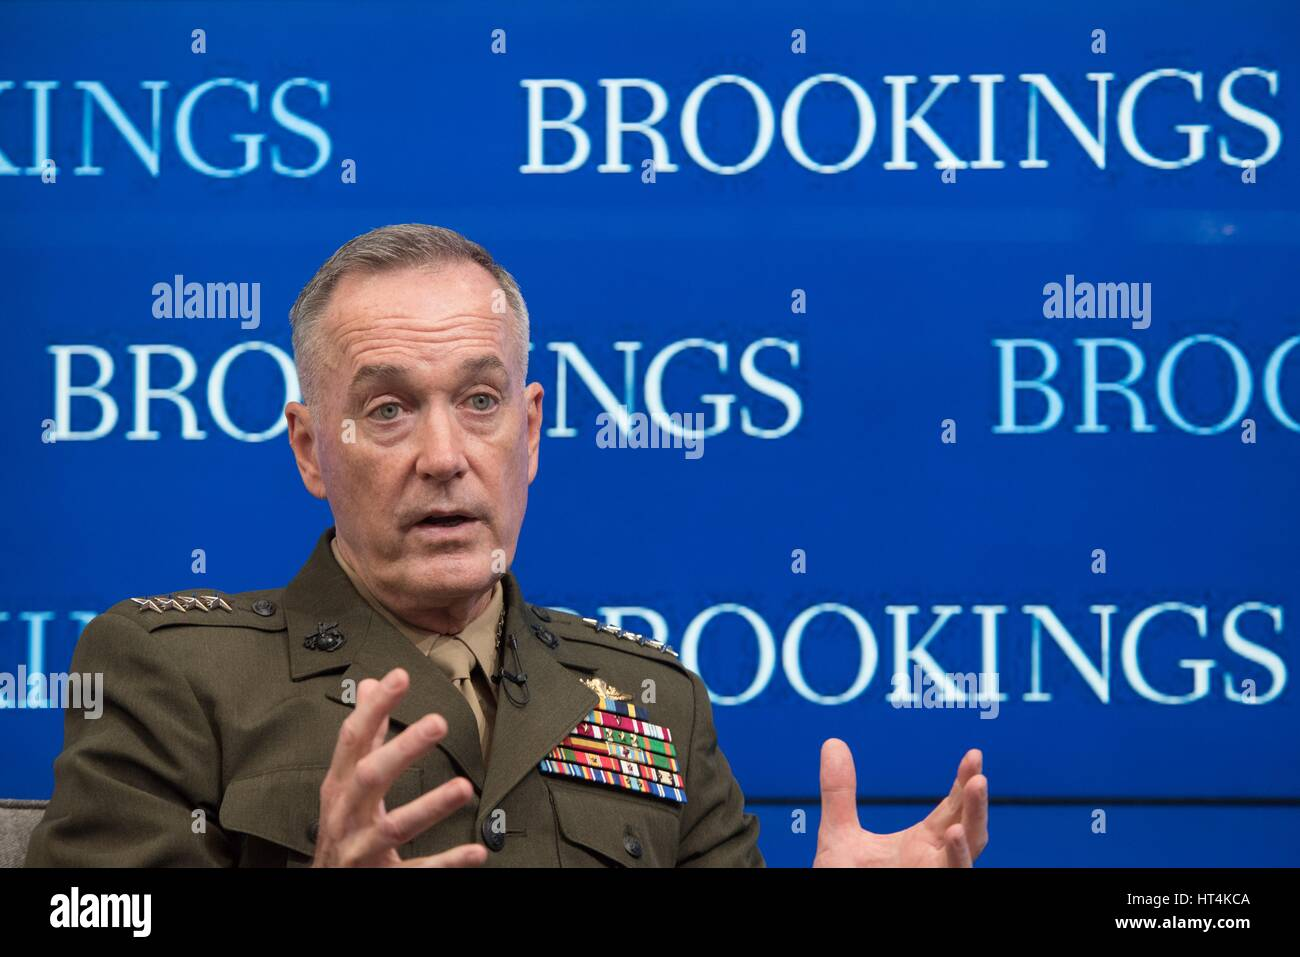 U.S. Joint Chiefs of Staff Chairman Joseph Dunford speaks at the Brookings Institution February 23, 2017 in Washington, - Stock Image